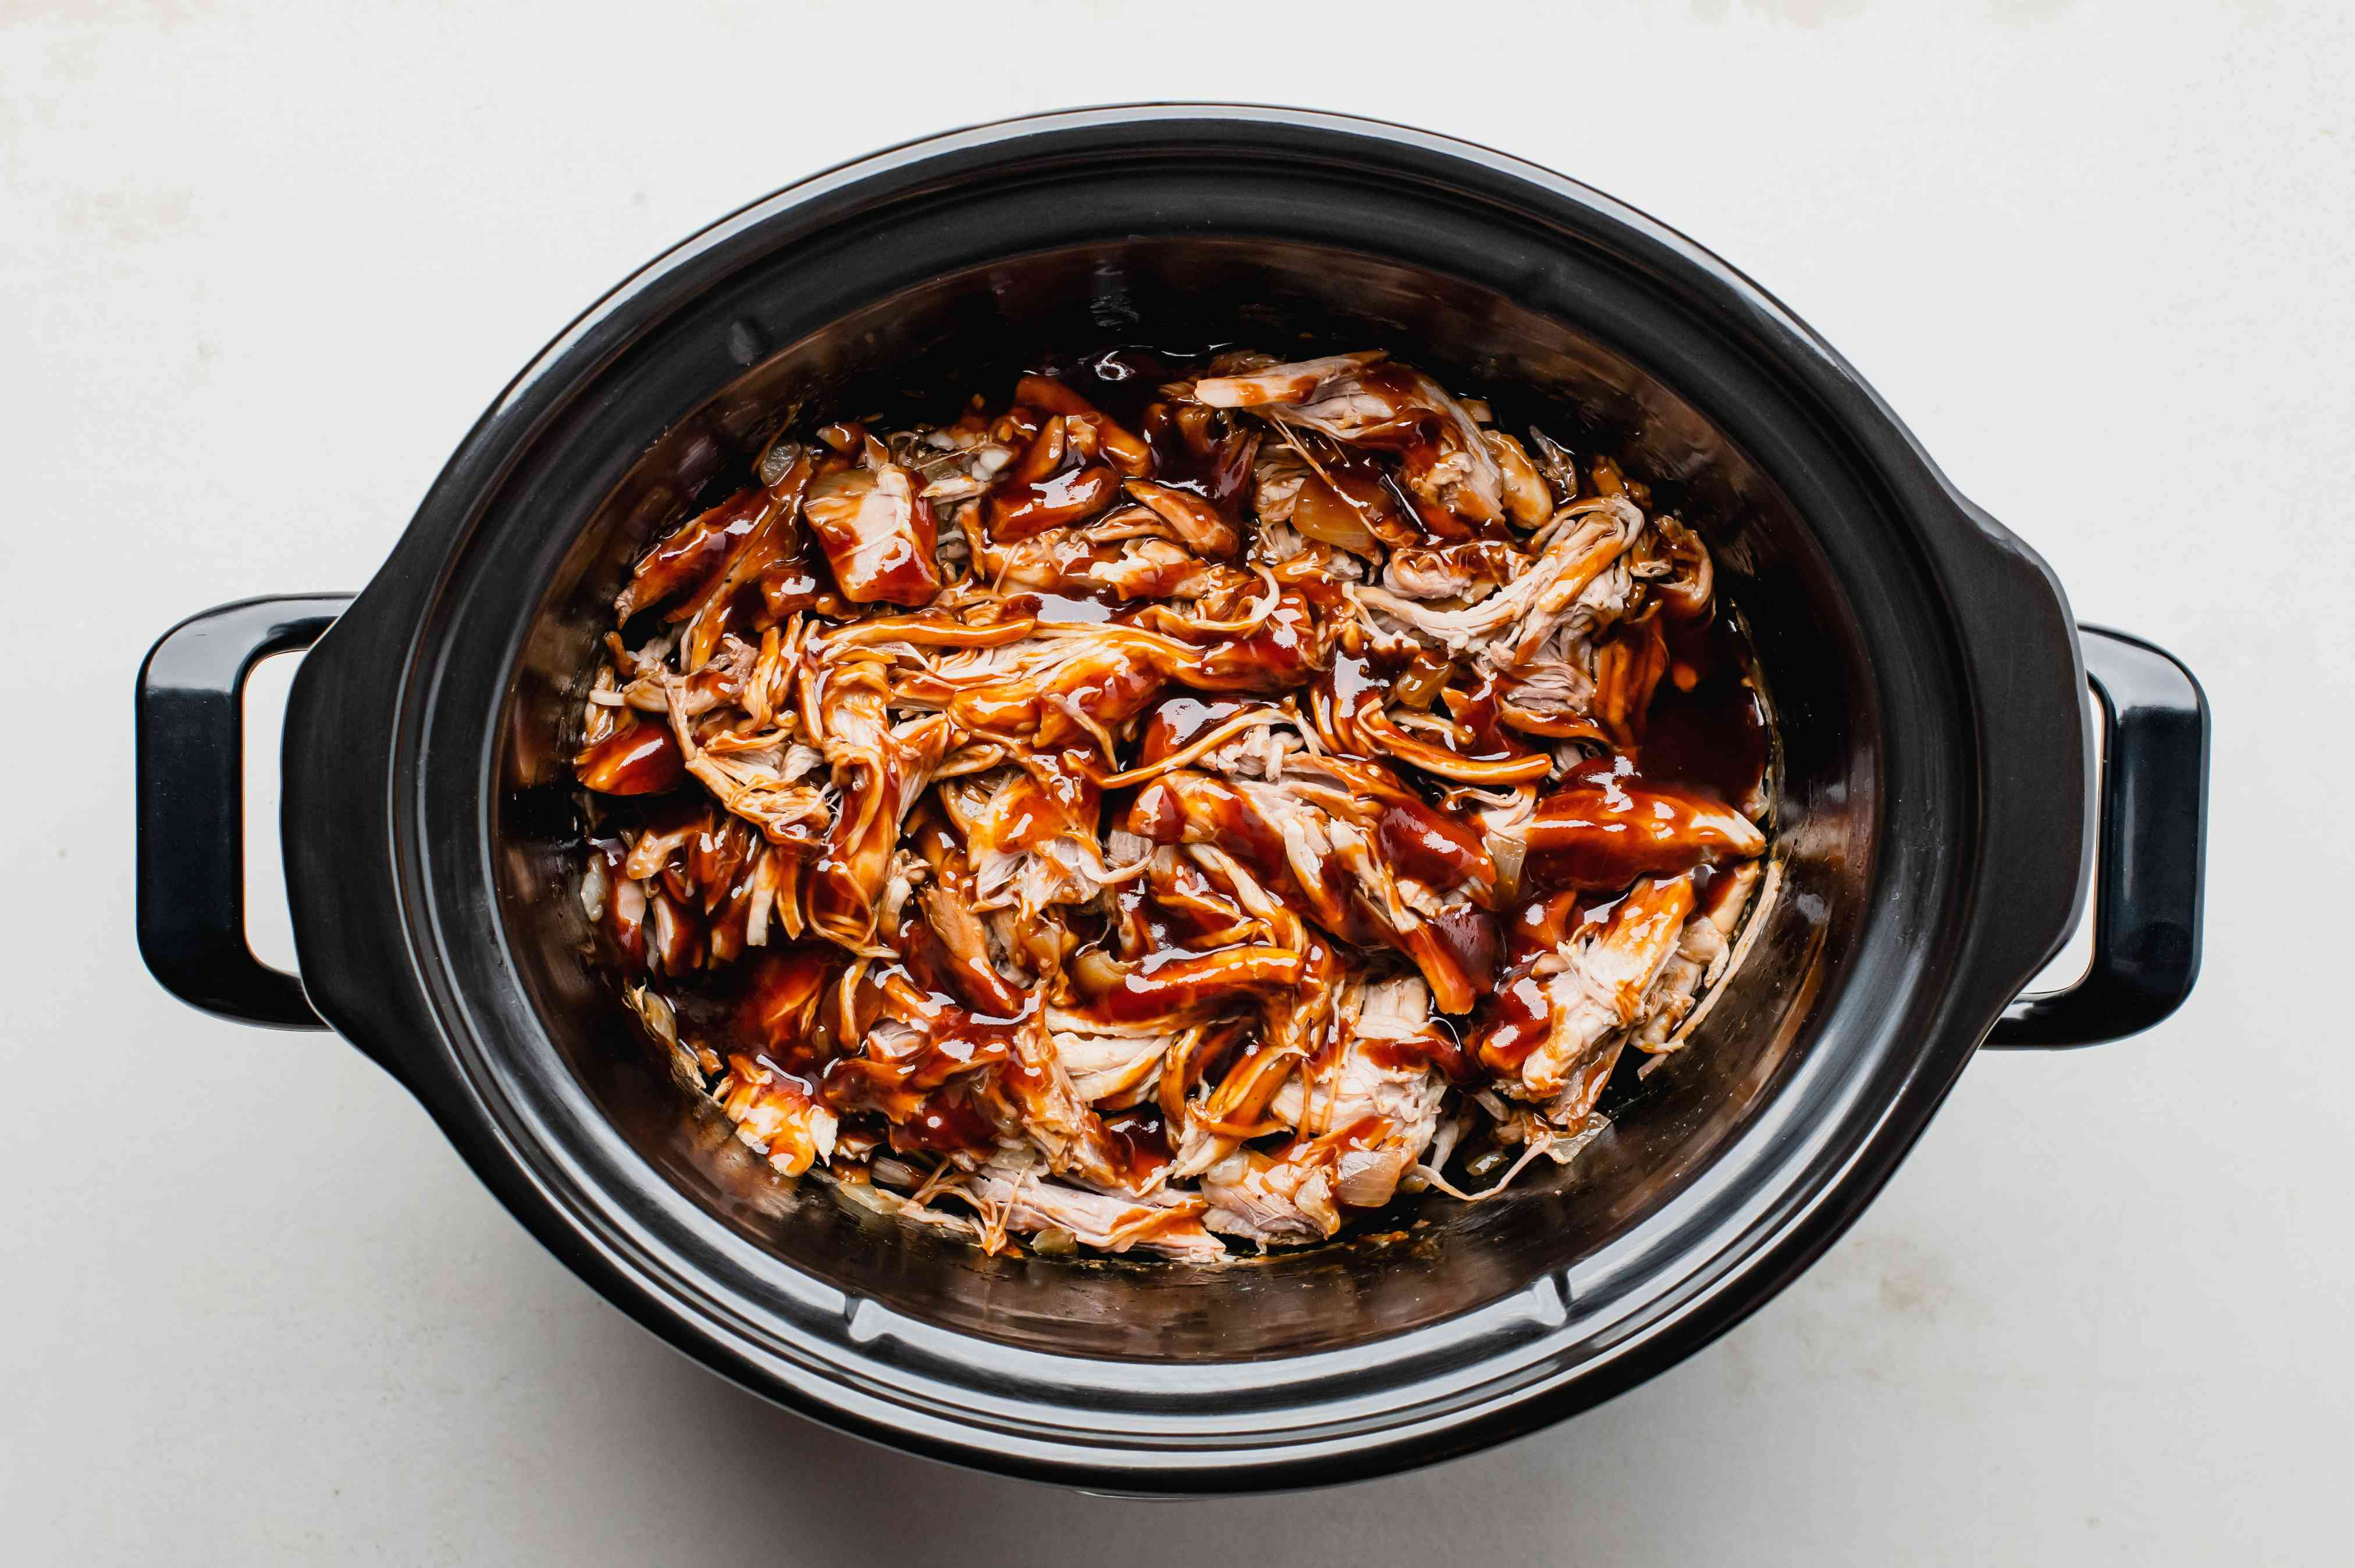 Barbecue sauce added to shredded pork in cooker